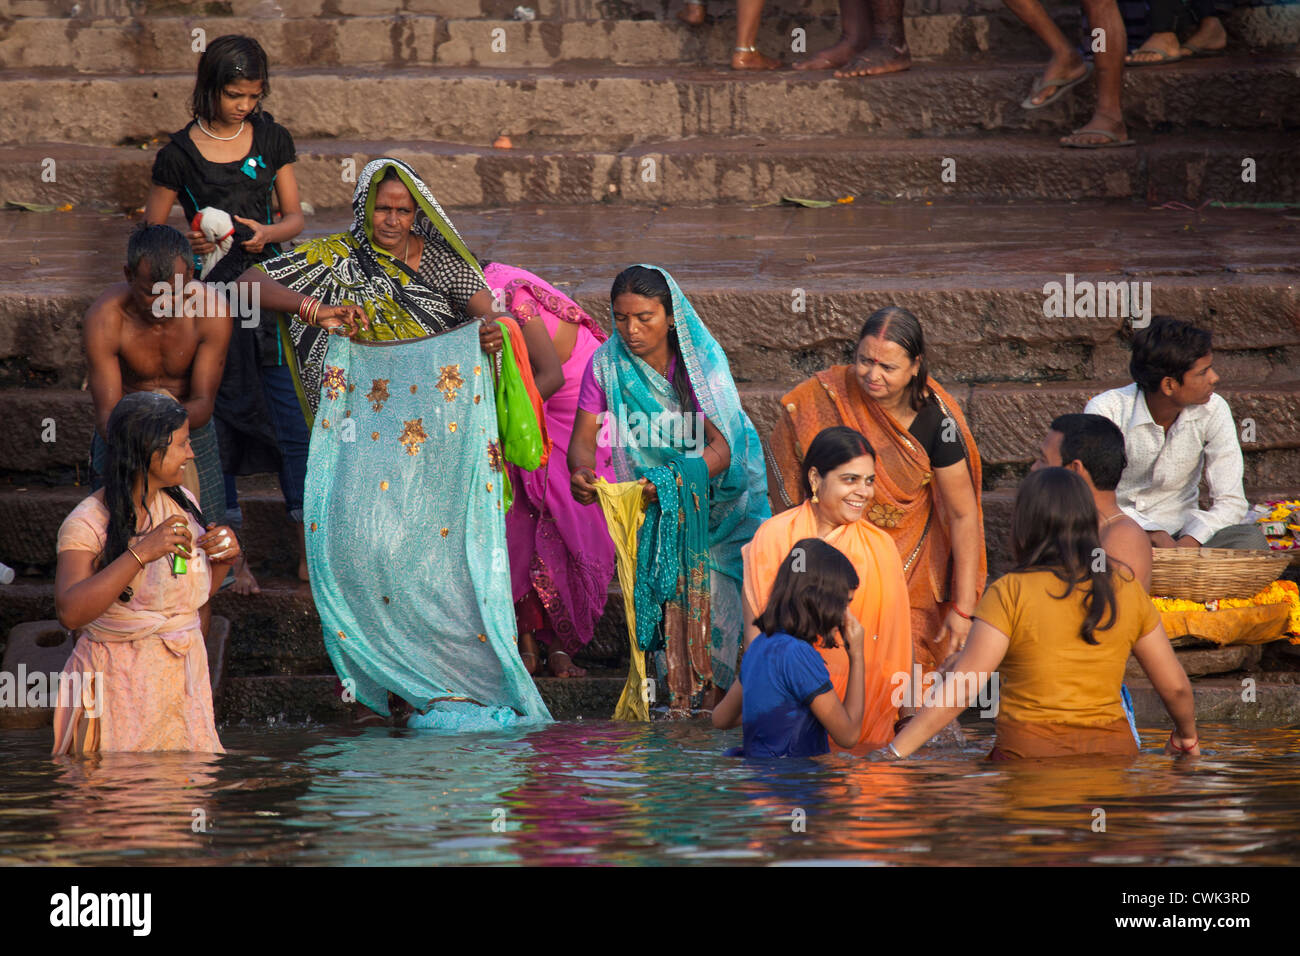 1fafa9fe04e Indian women bathing in polluted water of the Ganges river at Varanasi,  Uttar Pradesh,